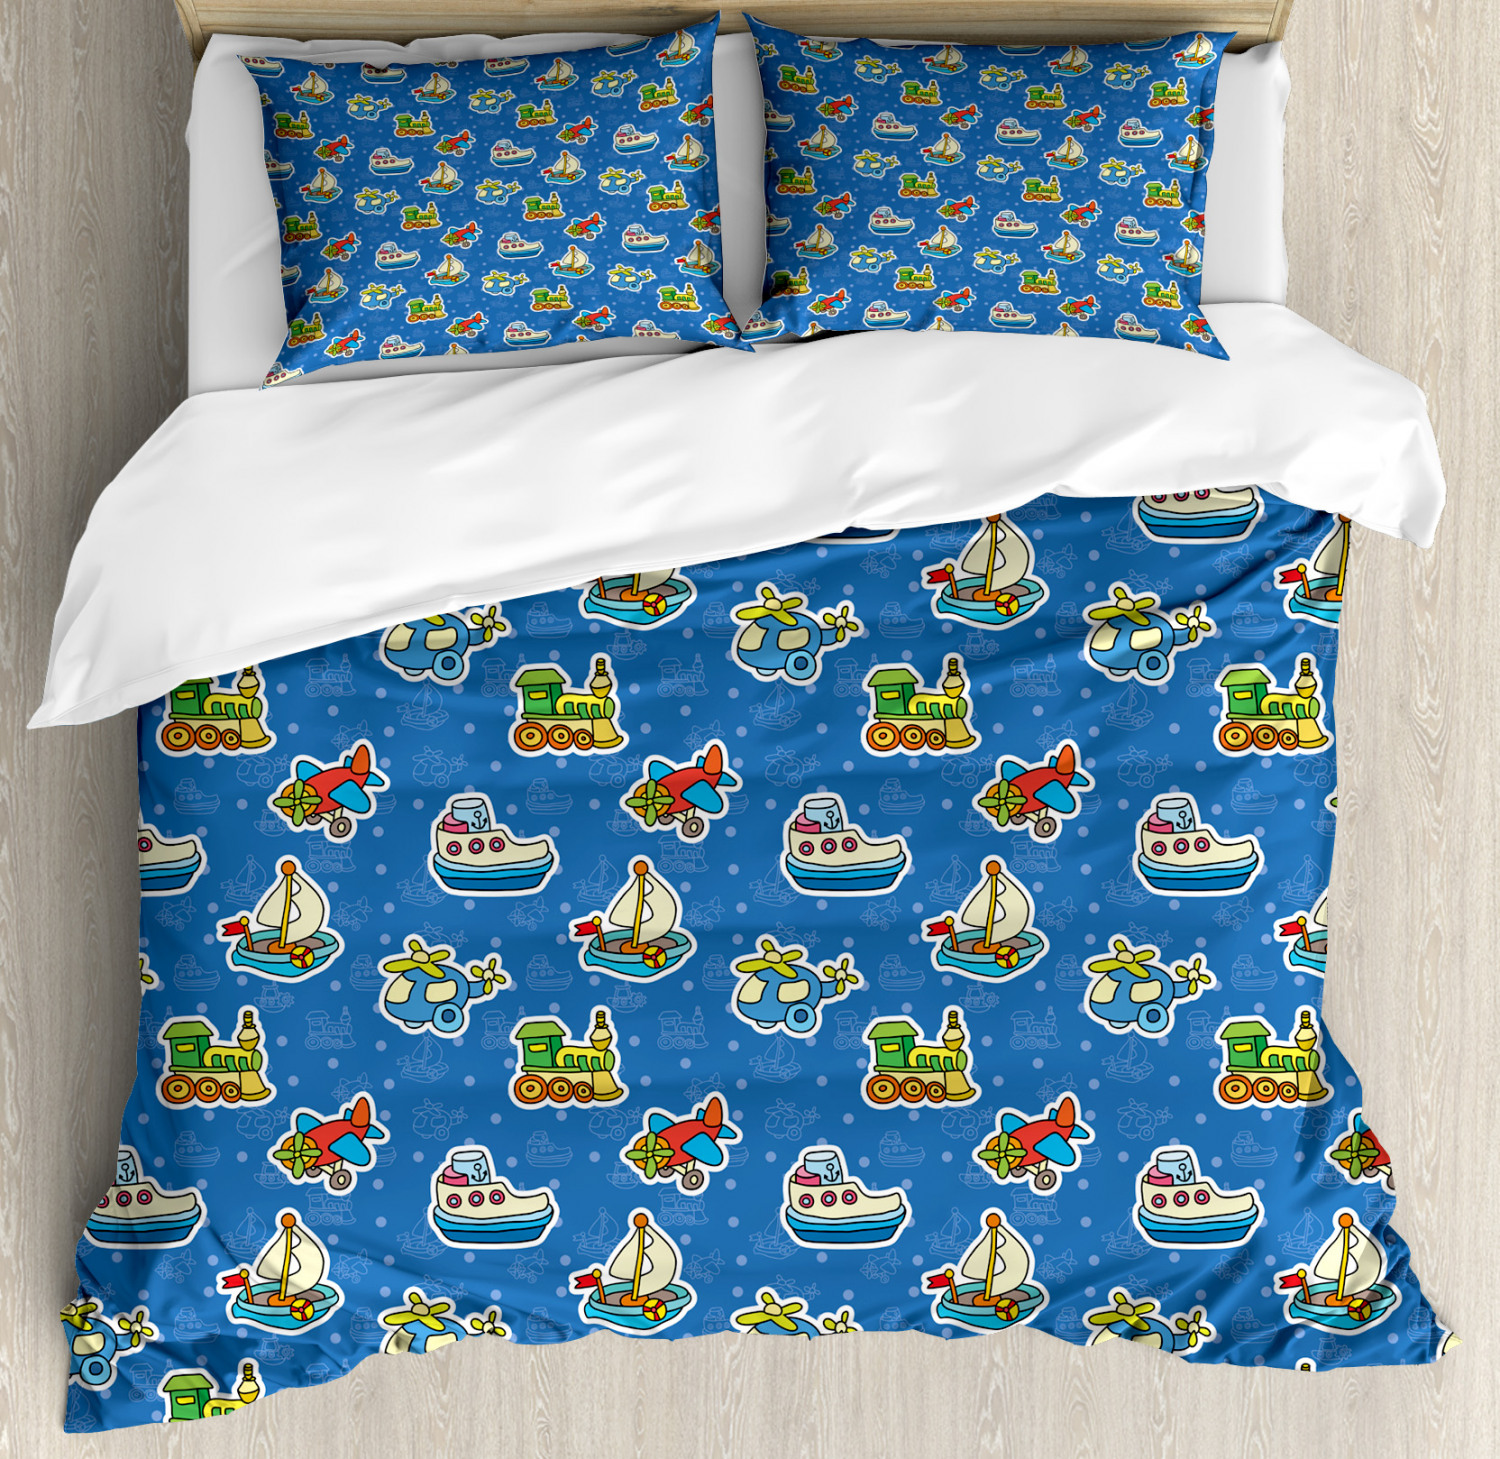 Kids Duvet Cover Set with Pillow Shams Cute Toys Pattern Artwork Print